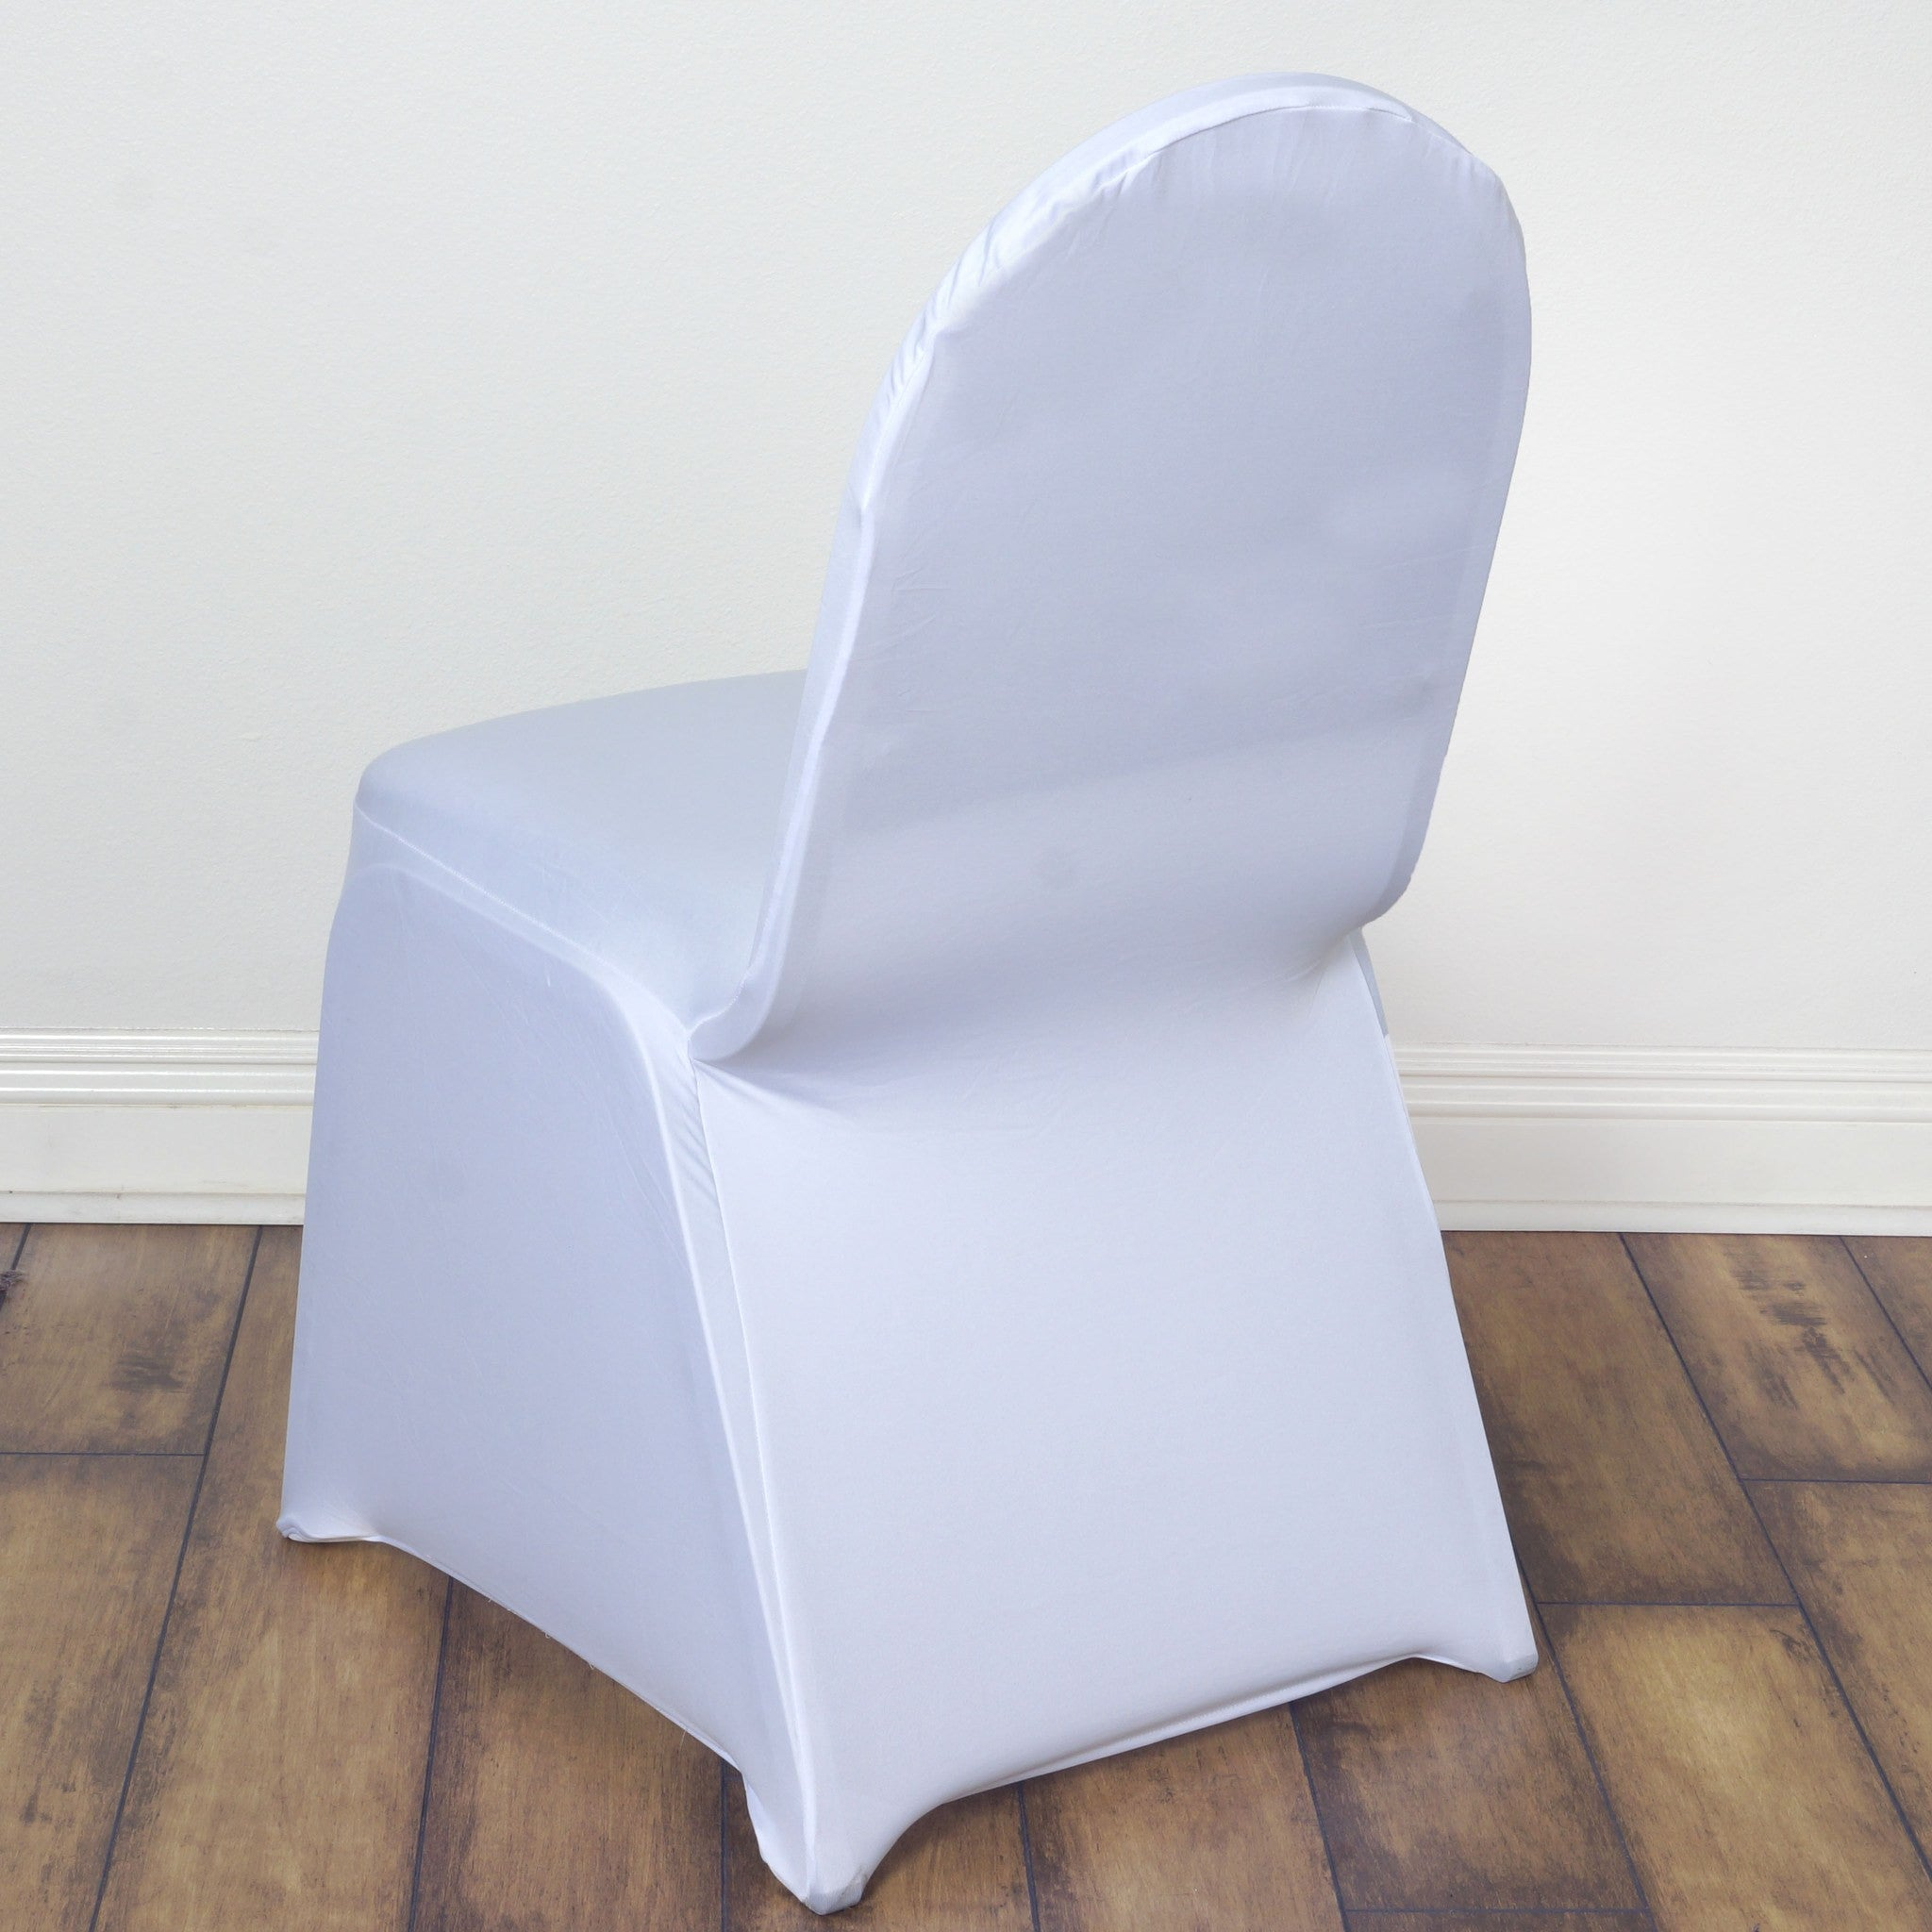 Spandex Stretch Banquet Chair Cover White